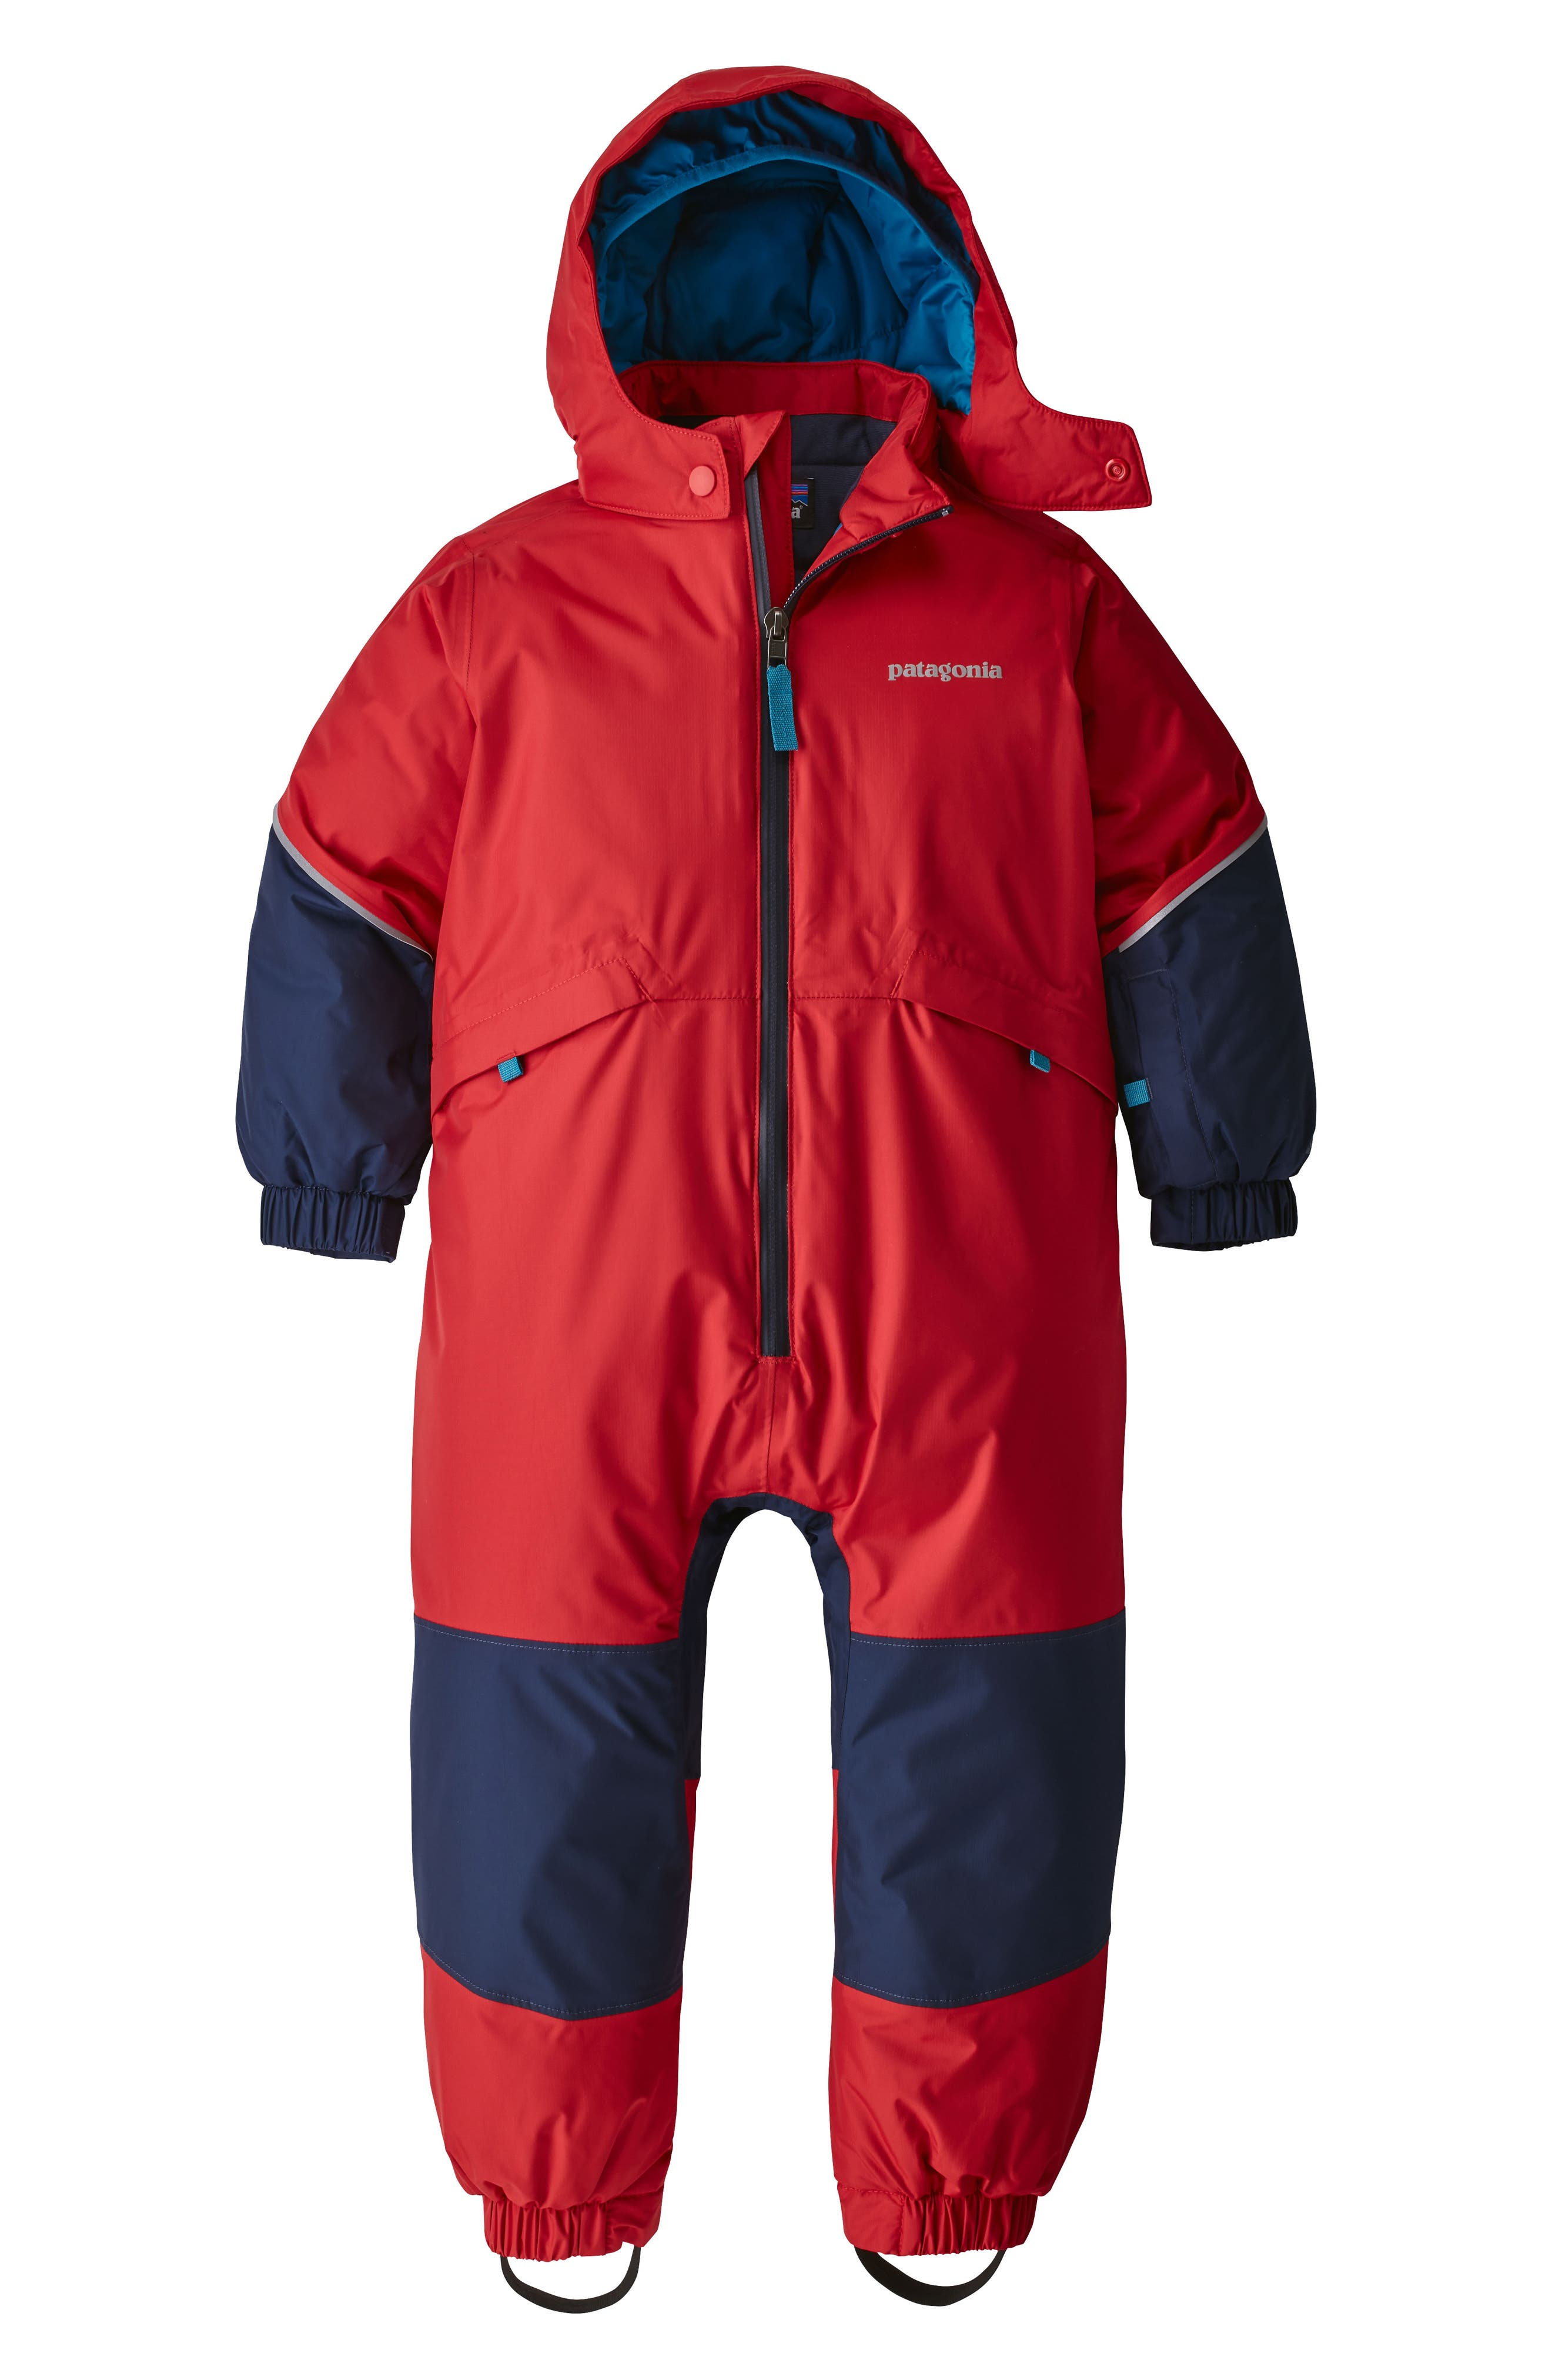 Toddler Boys Patagonia Snow Pile Waterproof Insulated OnePiece Snowsuit Size 5T  Red